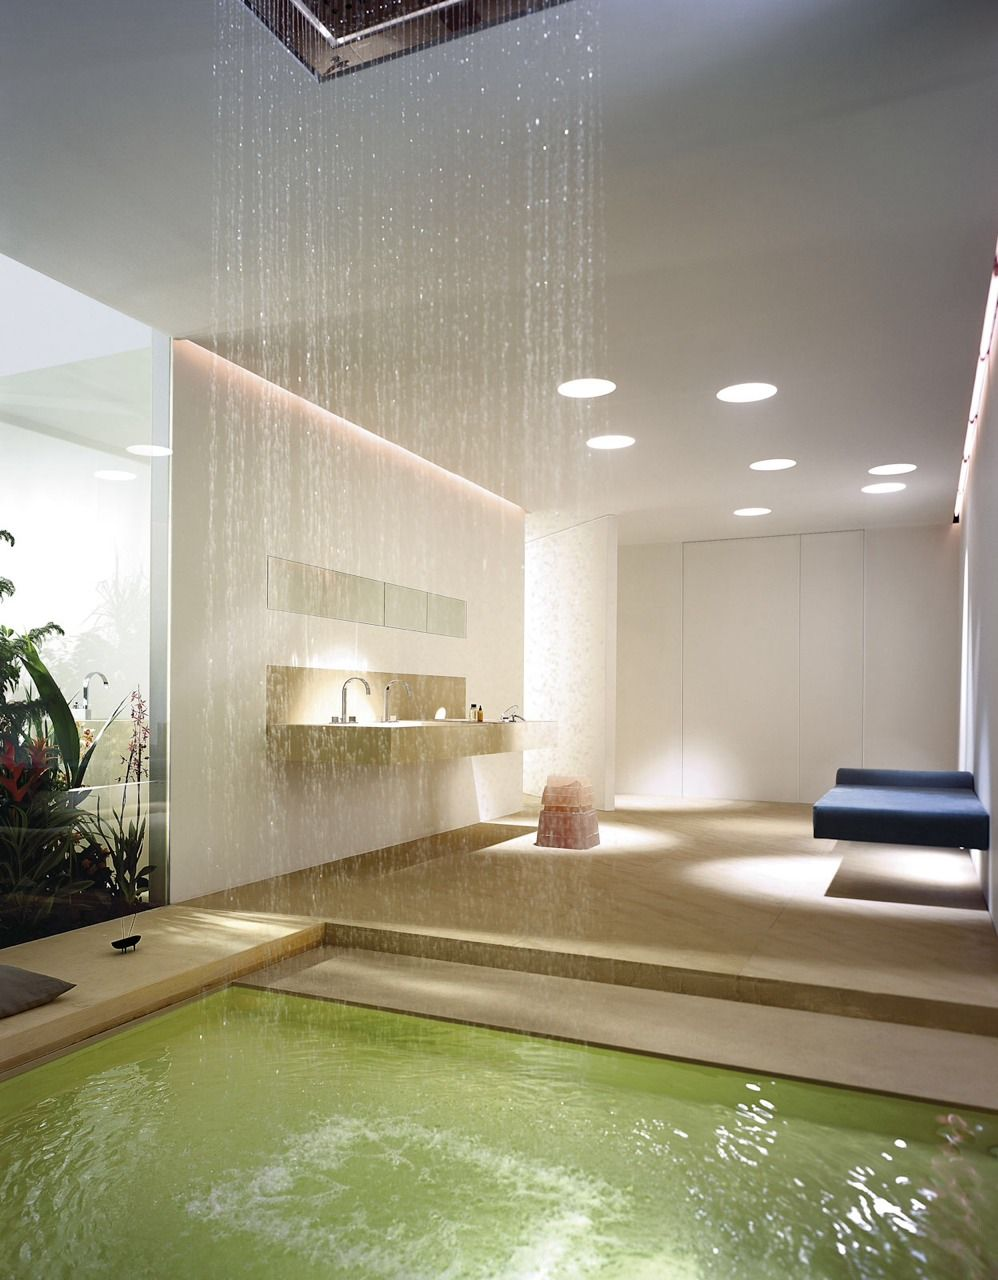 Shower Porn   From Tumblr   Of course. Shower Porn   From Tumblr   Of course    House  Bath and Zen interiors